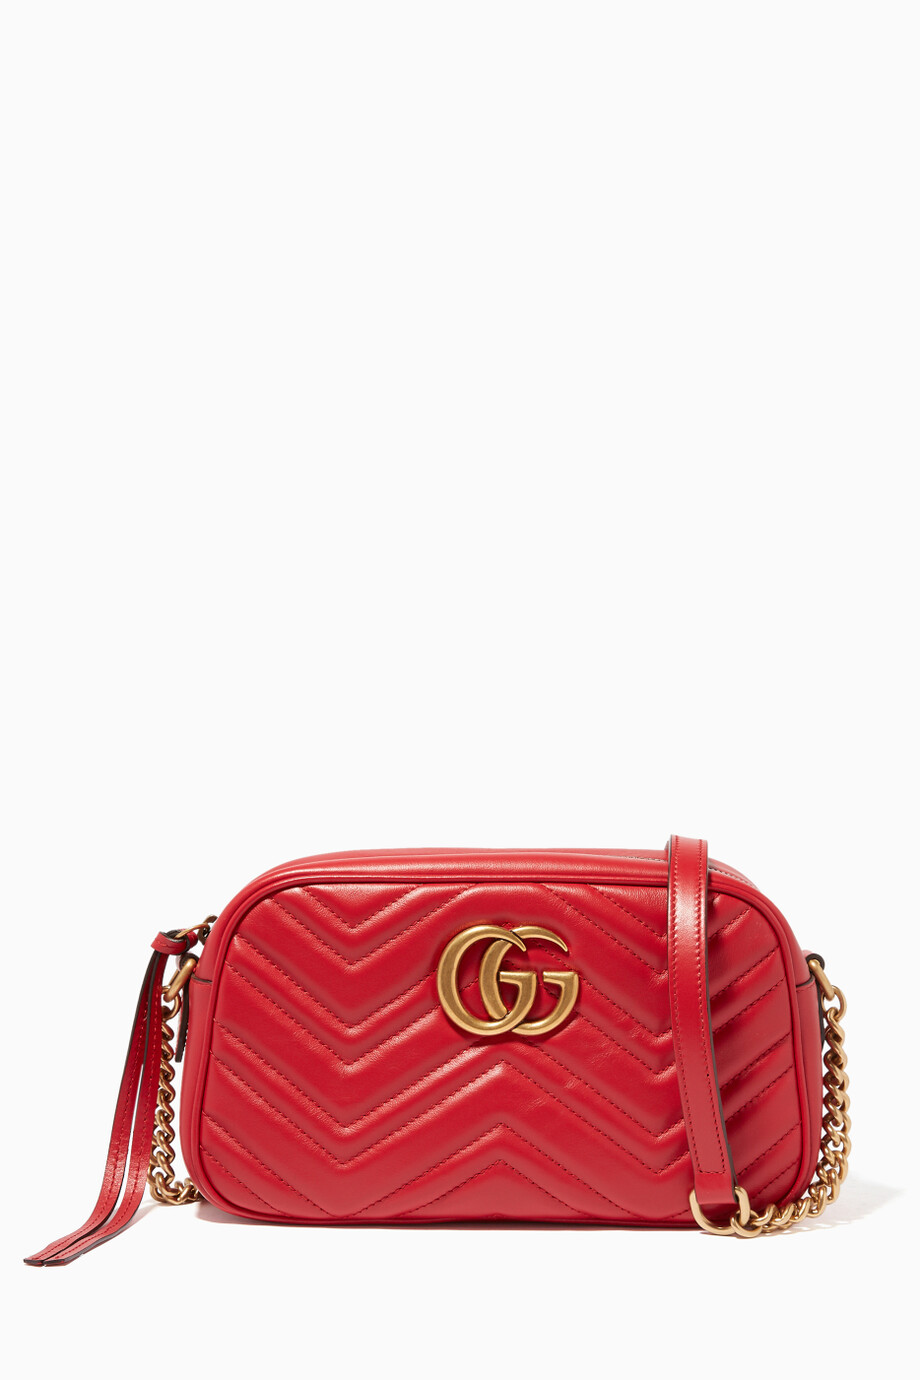 4dd1c6bdc Shop Gucci Red Hibiscus-Red Leather Small GG Marmont Shoulder Bag ...